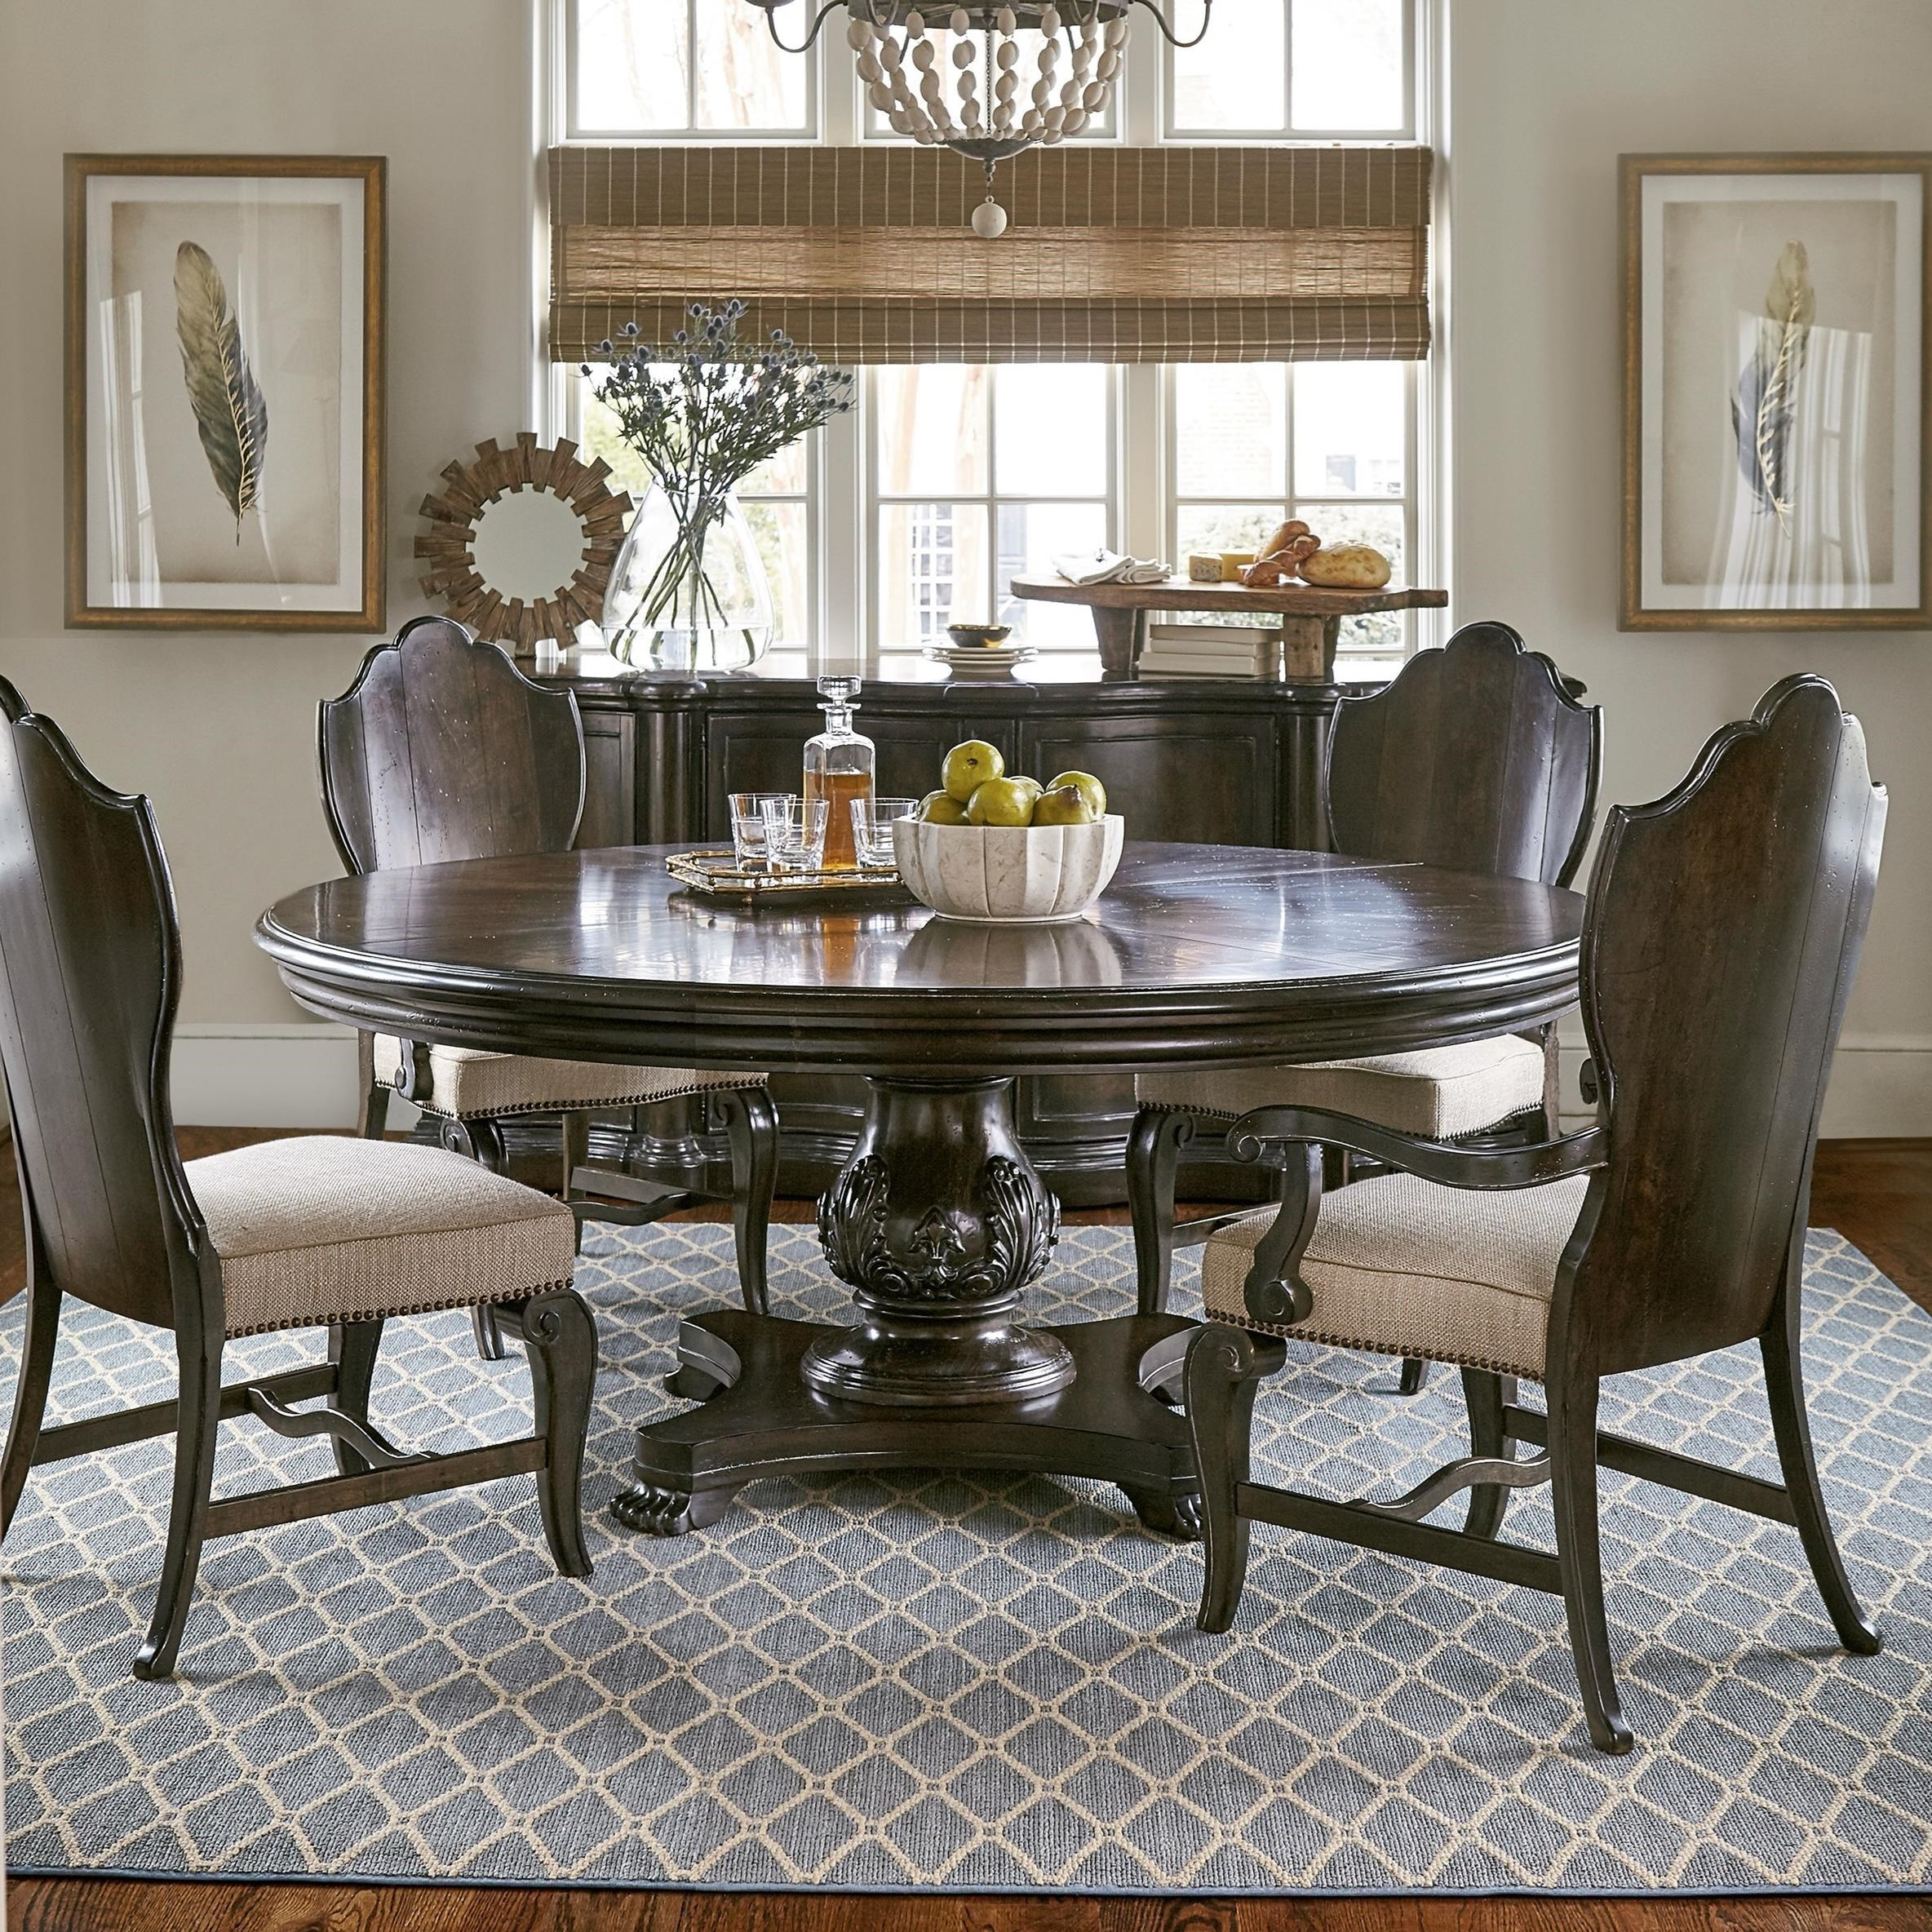 ART Furniture Inc Continental 5 Piece 72quot Round Dining  : continental 1157662532237225 26152x2372052x237204 b1jpgscalebothampwidth500ampheight500ampfsharpen25ampdown from www.dhifurniture.com size 500 x 500 jpeg 91kB